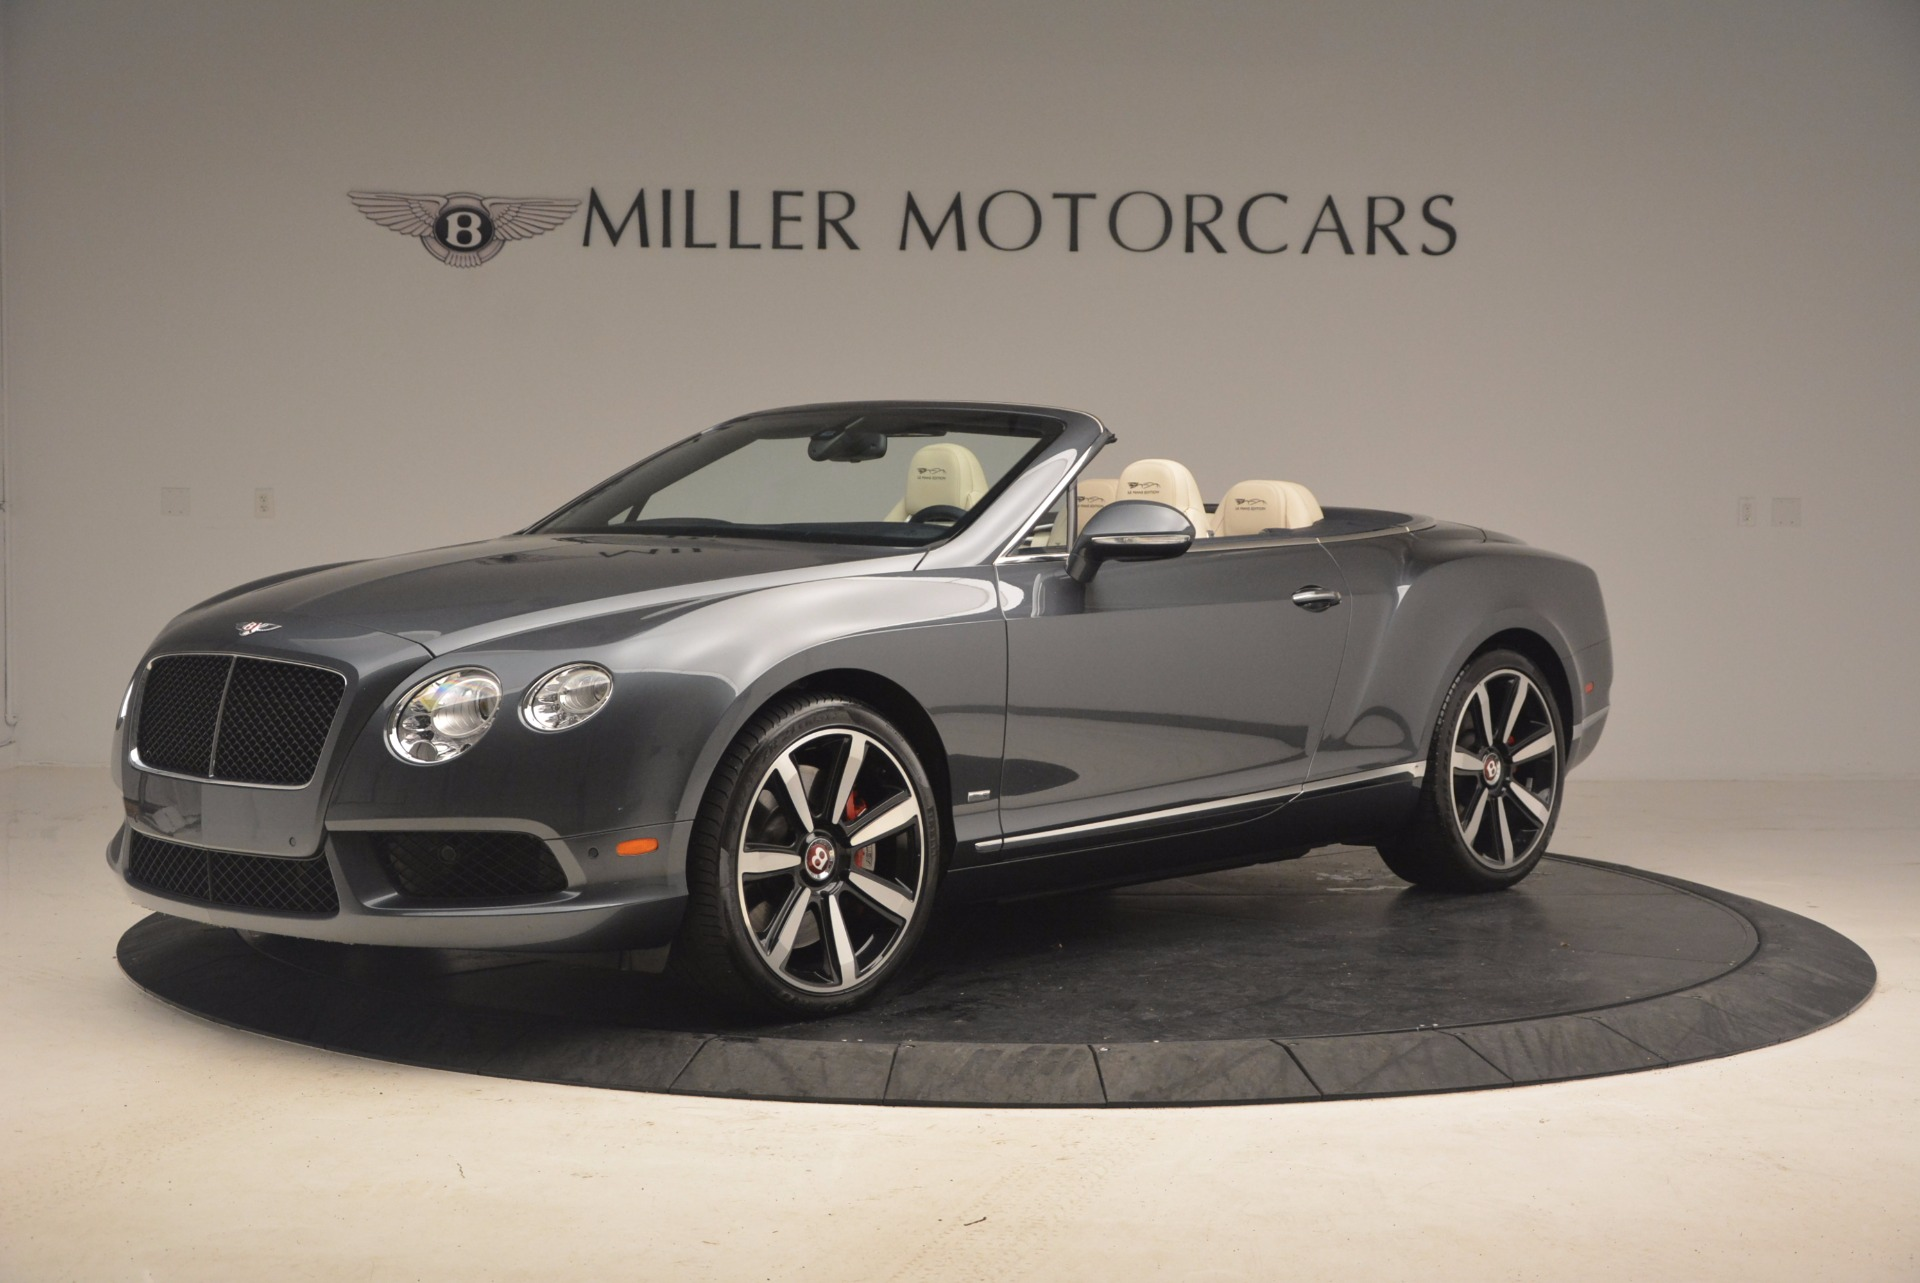 Used 2013 Bentley Continental GT V8 Le Mans Edition, 1 of 48 For Sale In Greenwich, CT 1288_p2